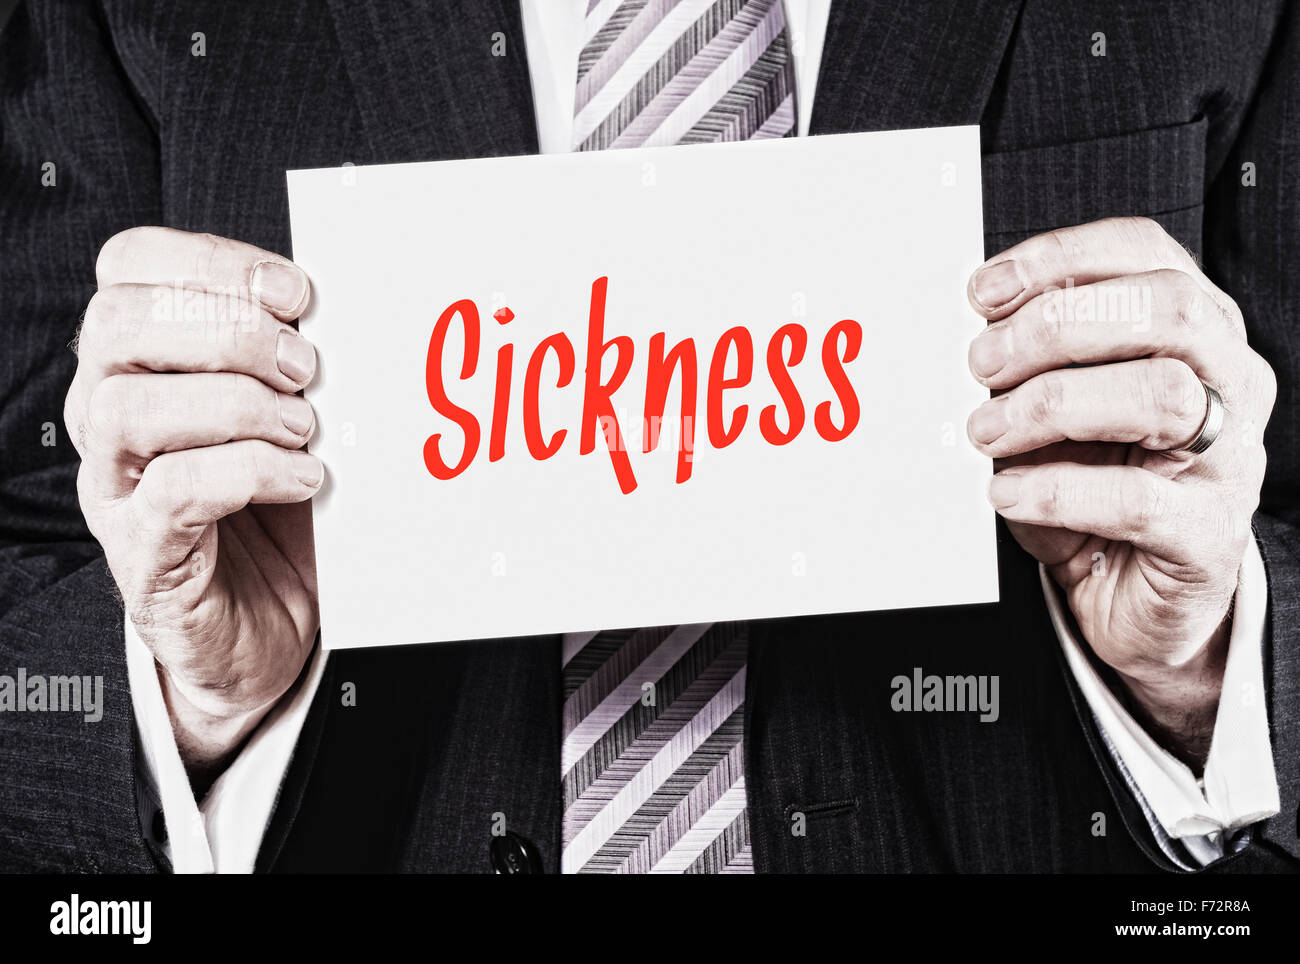 Sickness, Induction Training headlines concept. - Stock Image